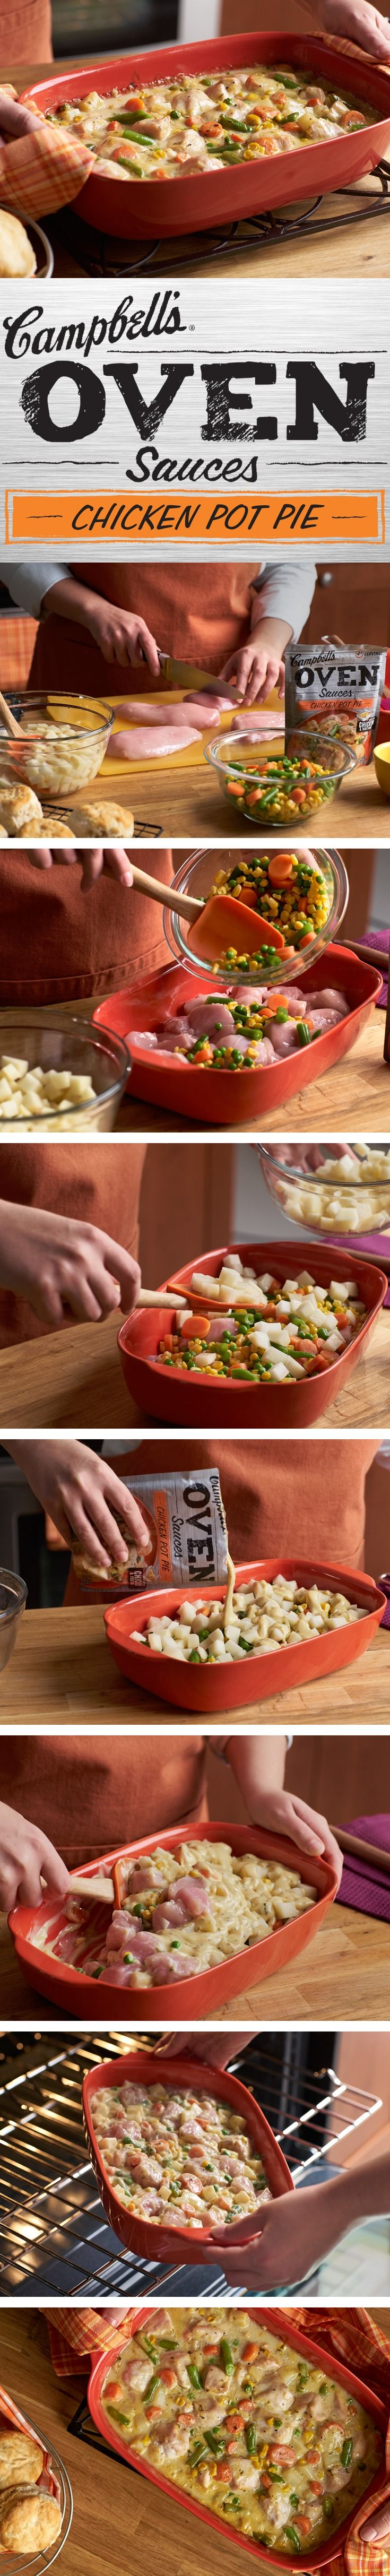 This chicken pot pie dinner will be loved by everyone in your family, and the recipe is made easy with Campbell's Chicken Pot Pie Oven Sauces.